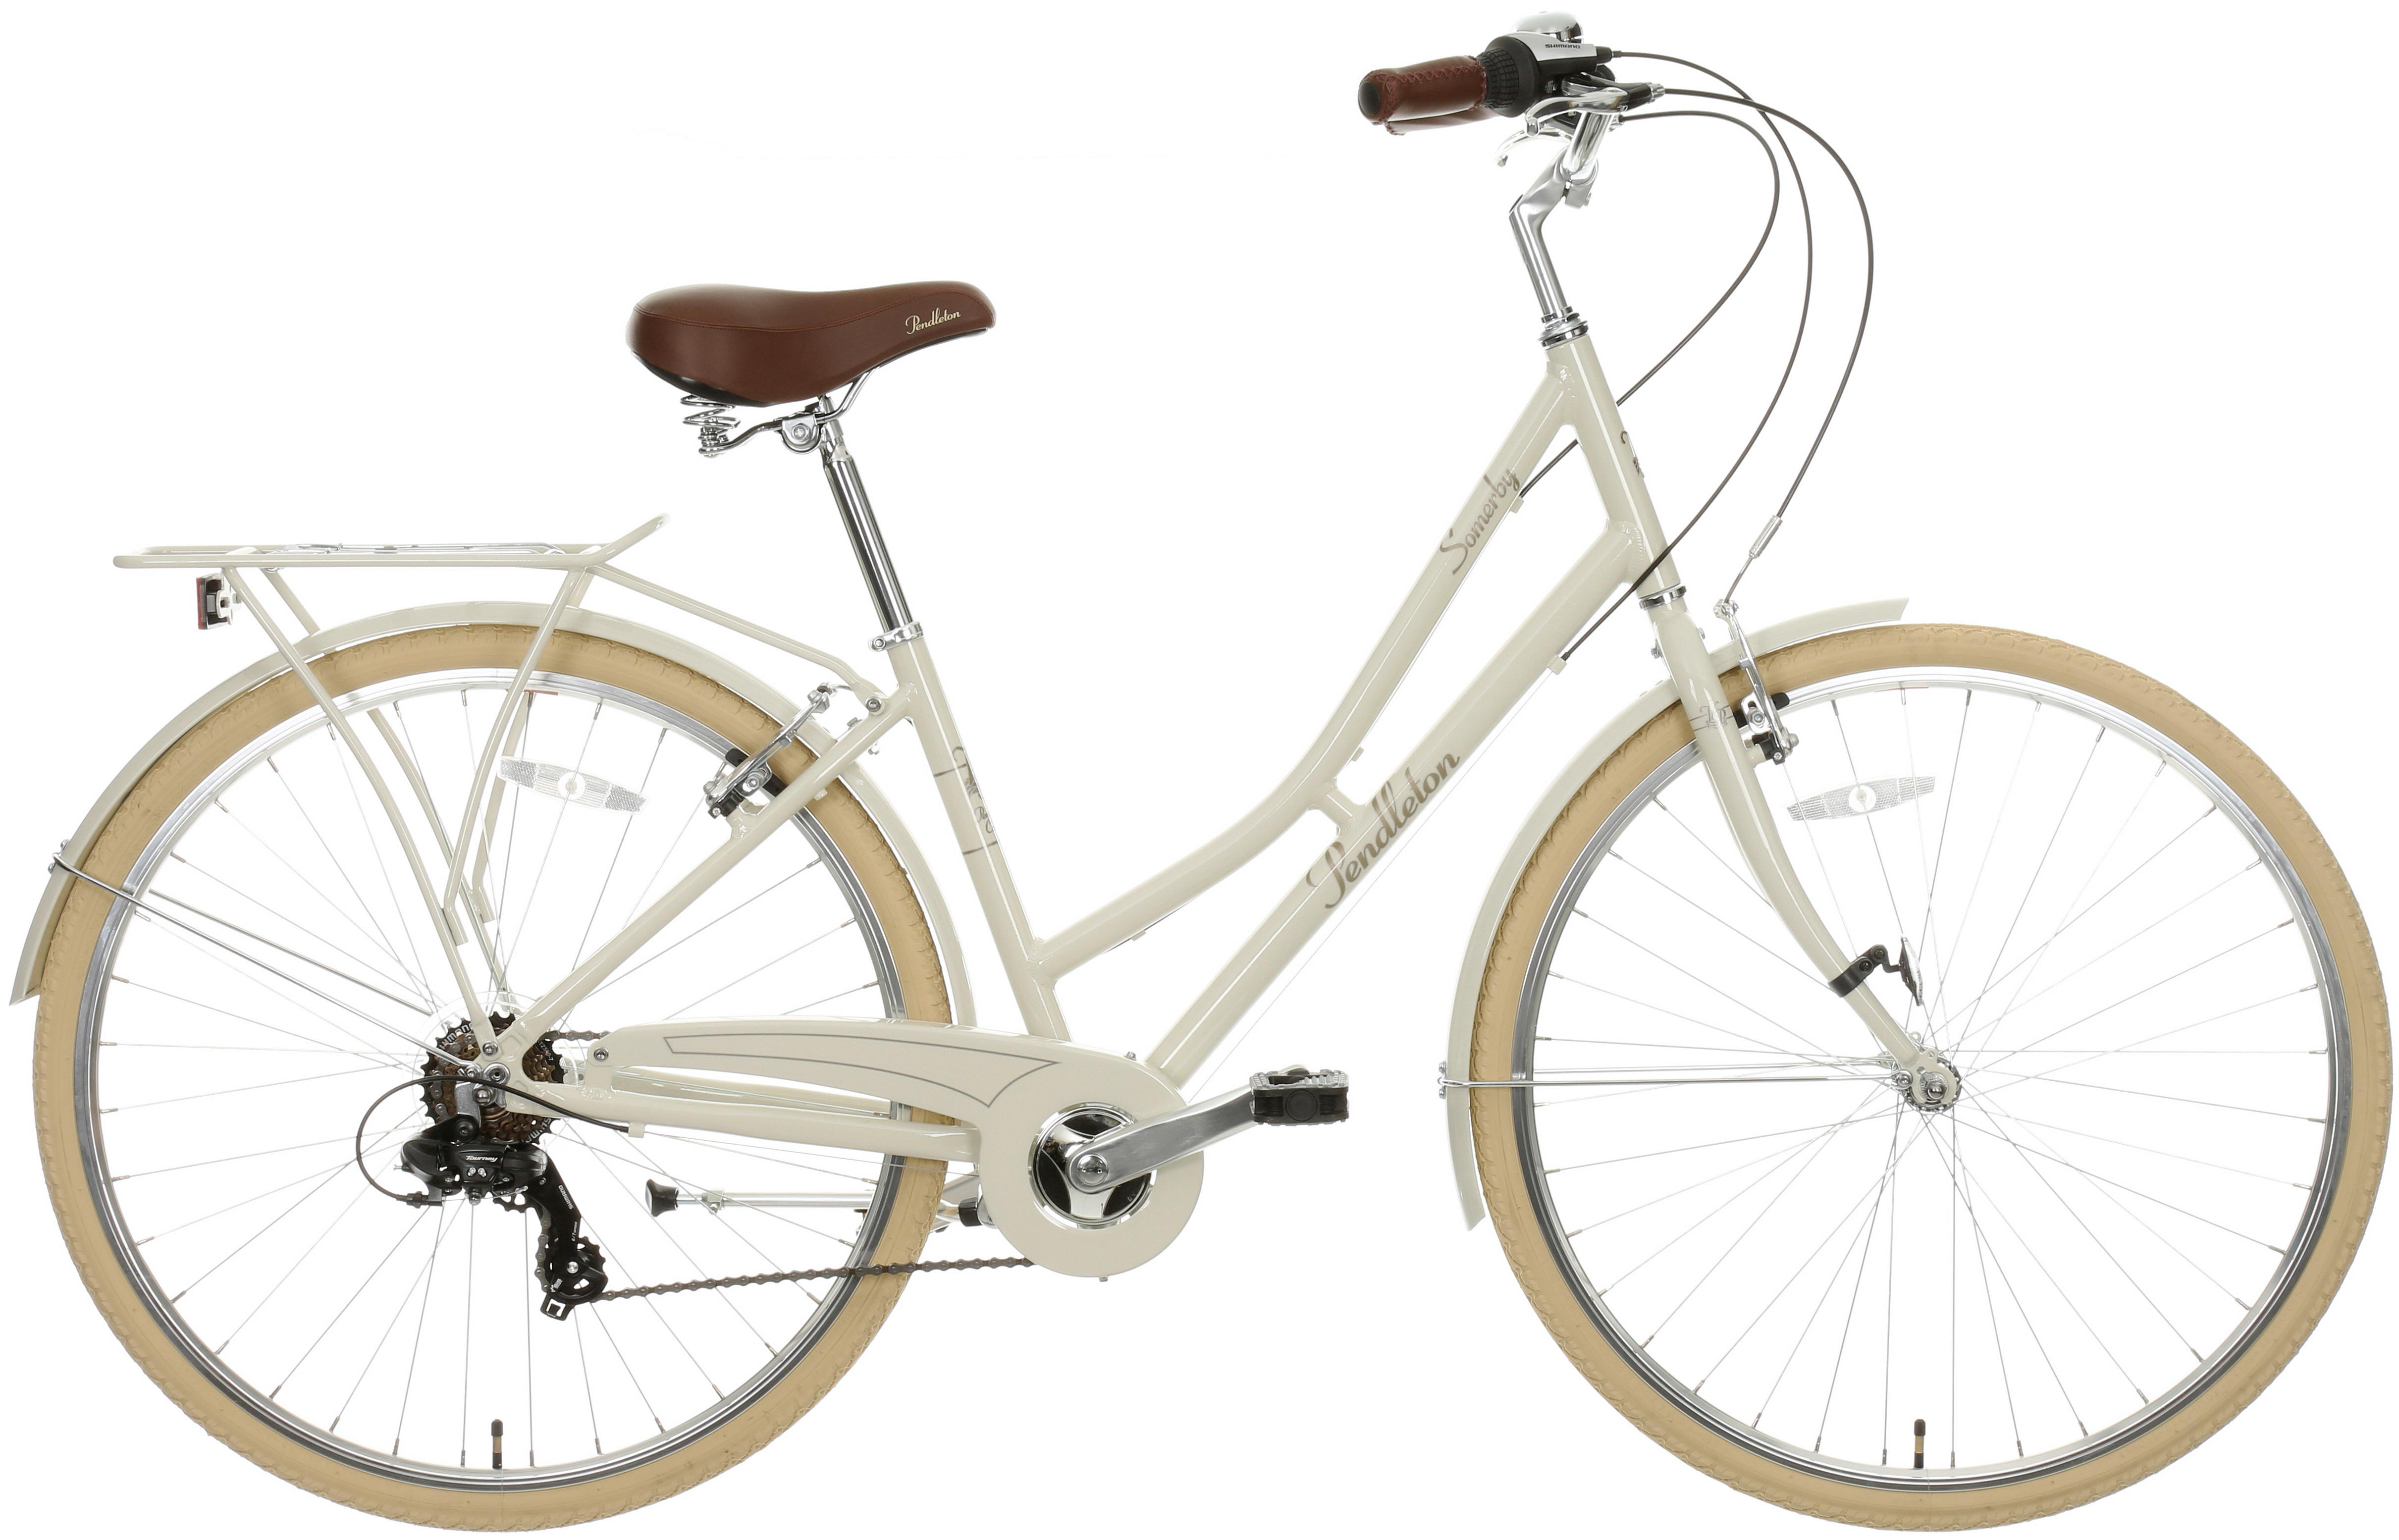 Pendleton Somerby Hybrid Bike - Bone 17 inch